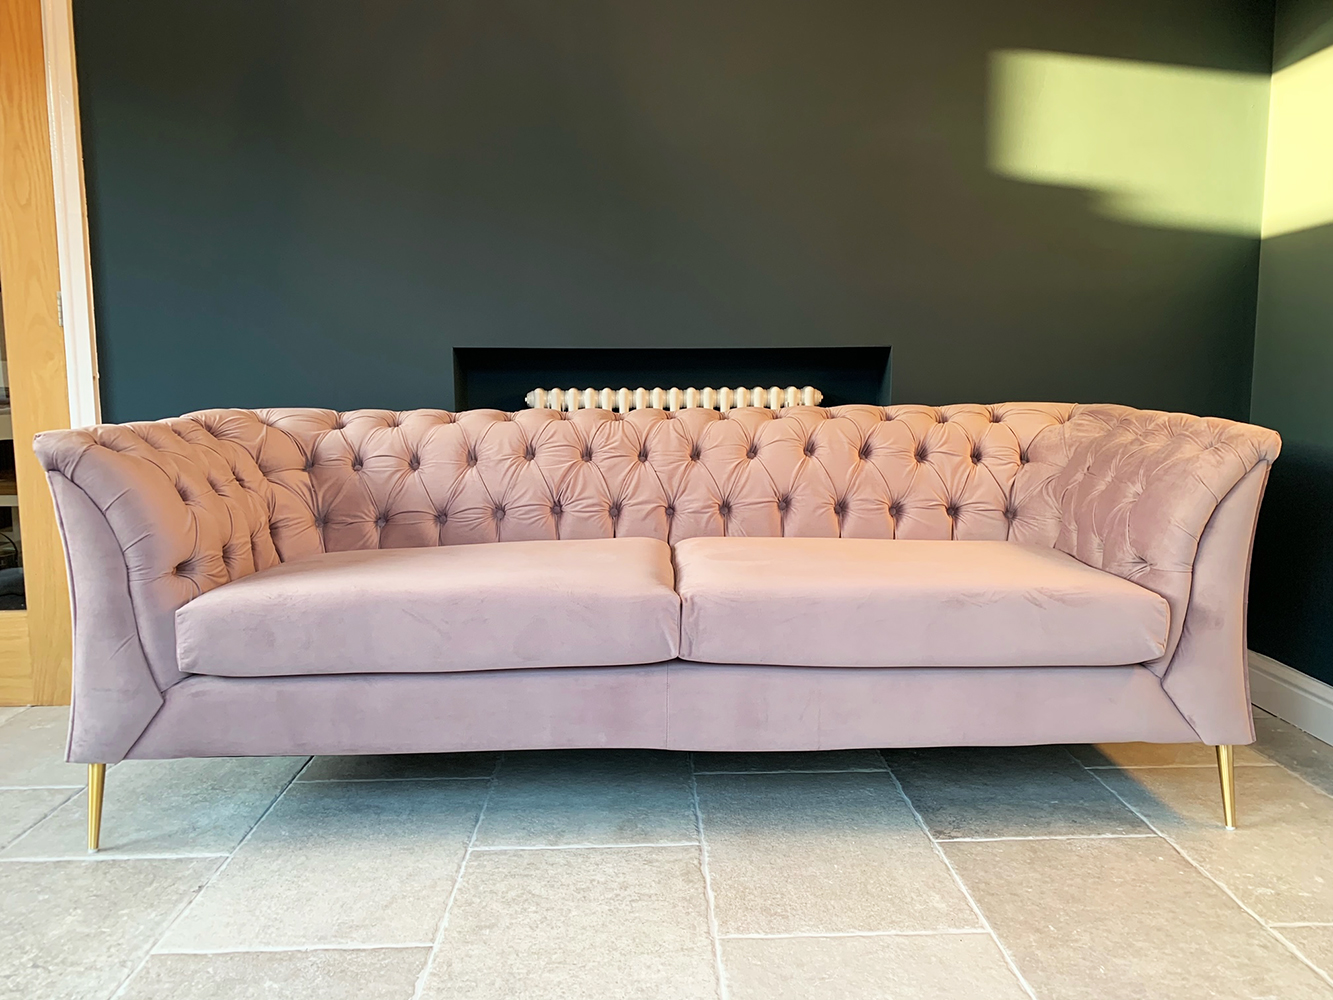 Lilac sofa Chesterfield Modern, velour material, gold legs